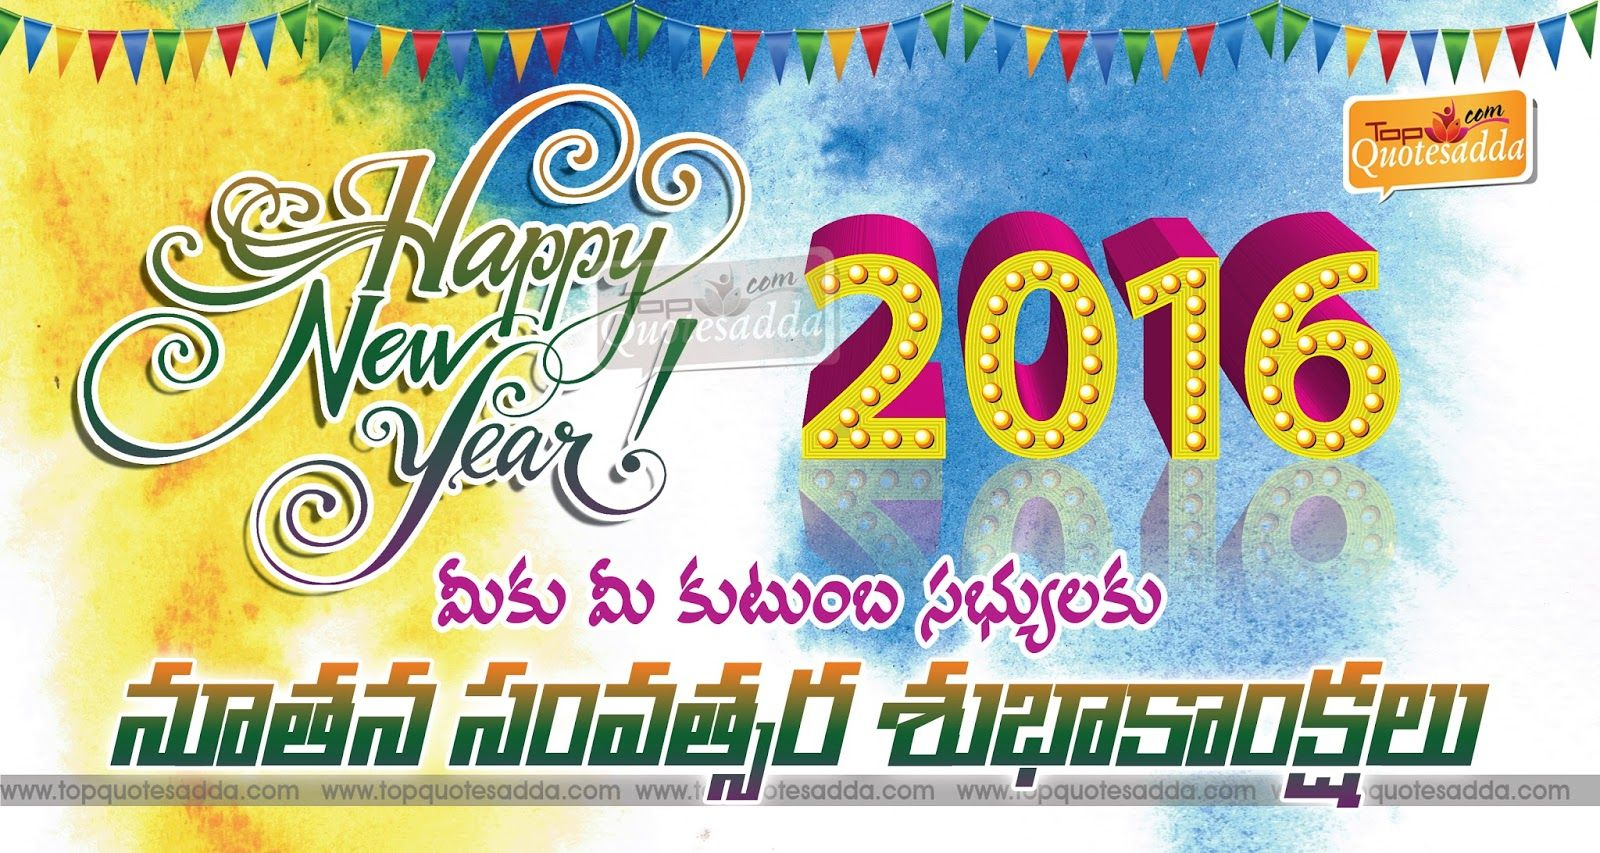 Telugu 2016 nuthana samvastara subhakankshalu images 2016 happy new happy new year 2016 telugu best greetings quotes m4hsunfo